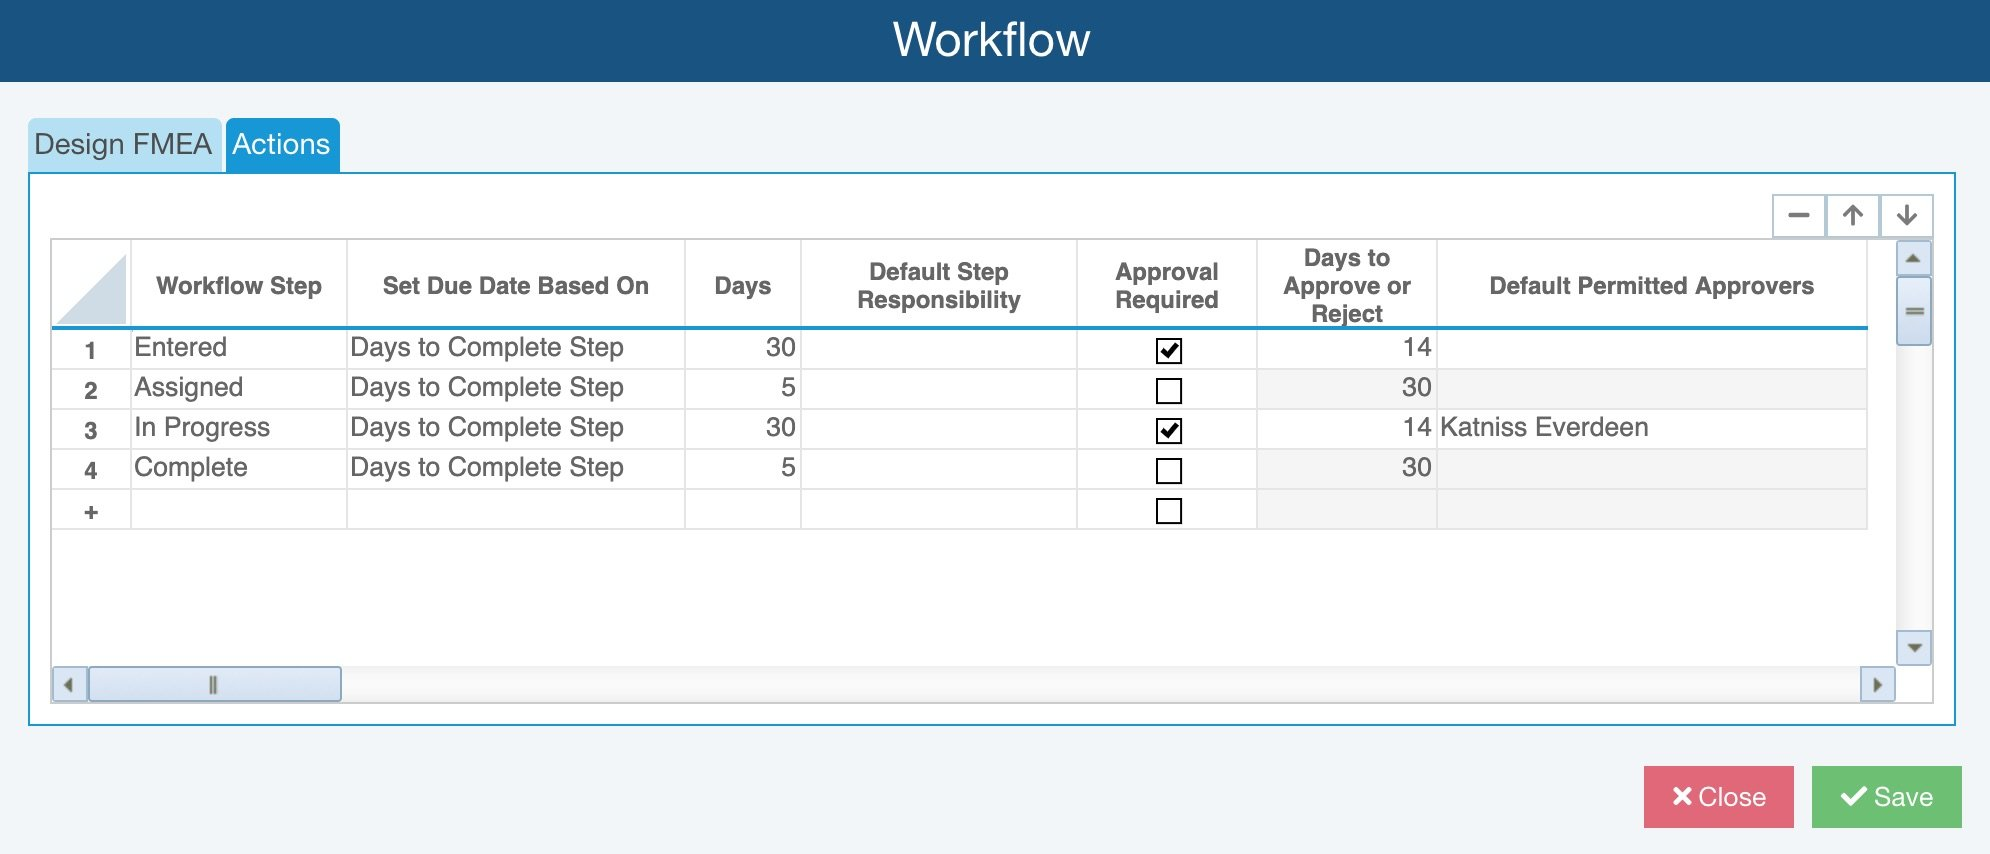 FMEA Action Workflow Example